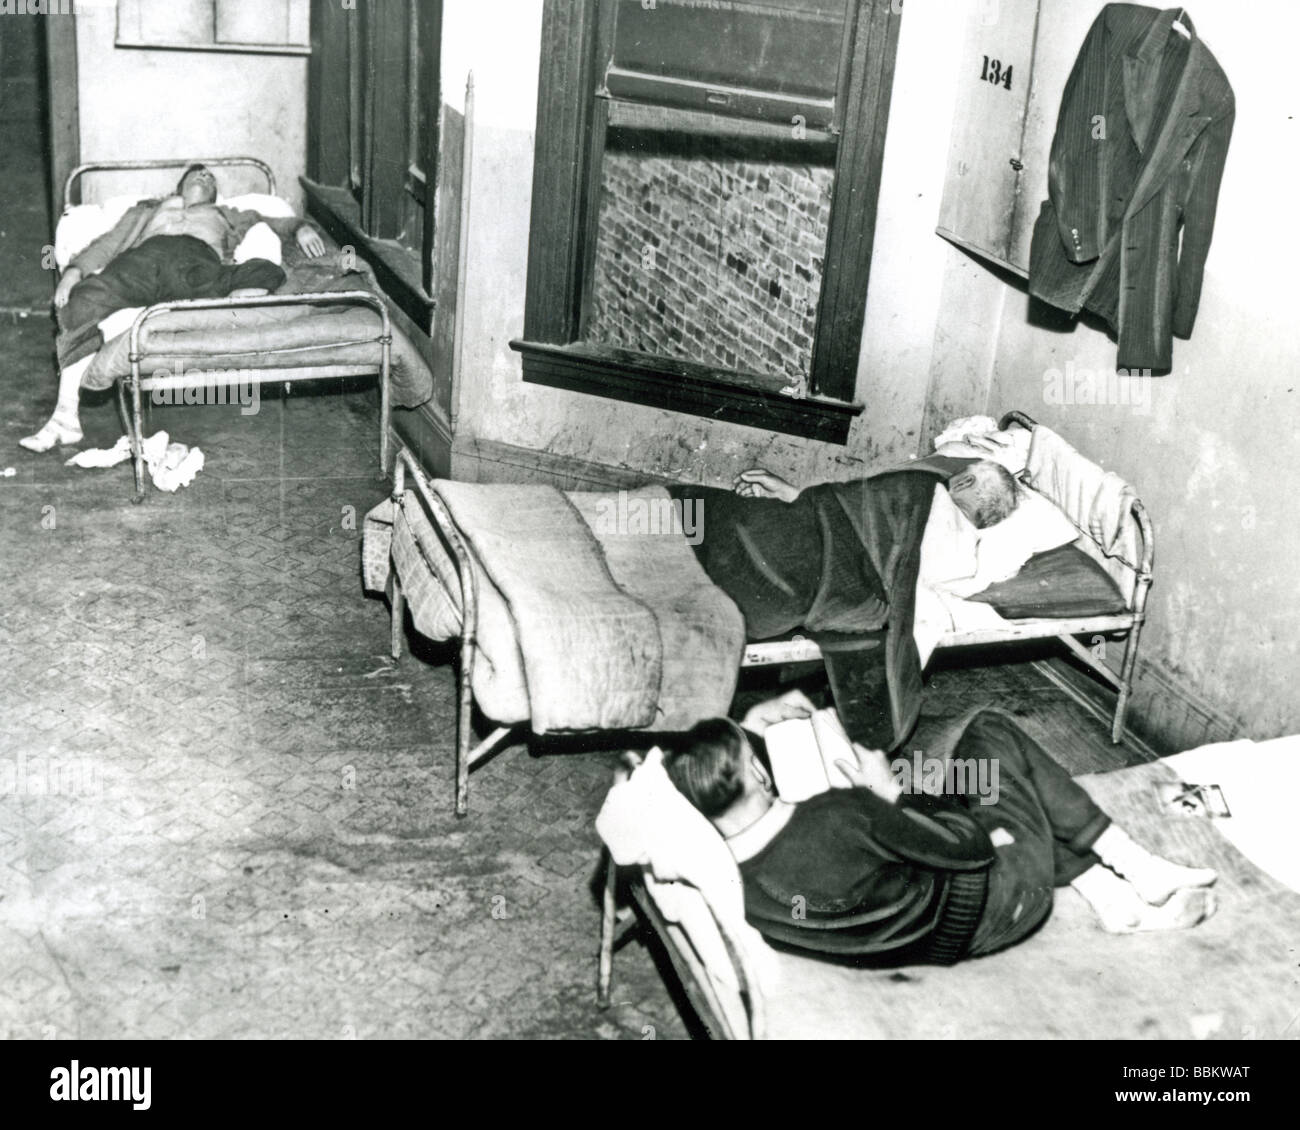 research paper on the great depression tough times tough people  great depression s stock photos great depression s stock chicago flophouse during the great depression of news philmetal news philmetal research paper